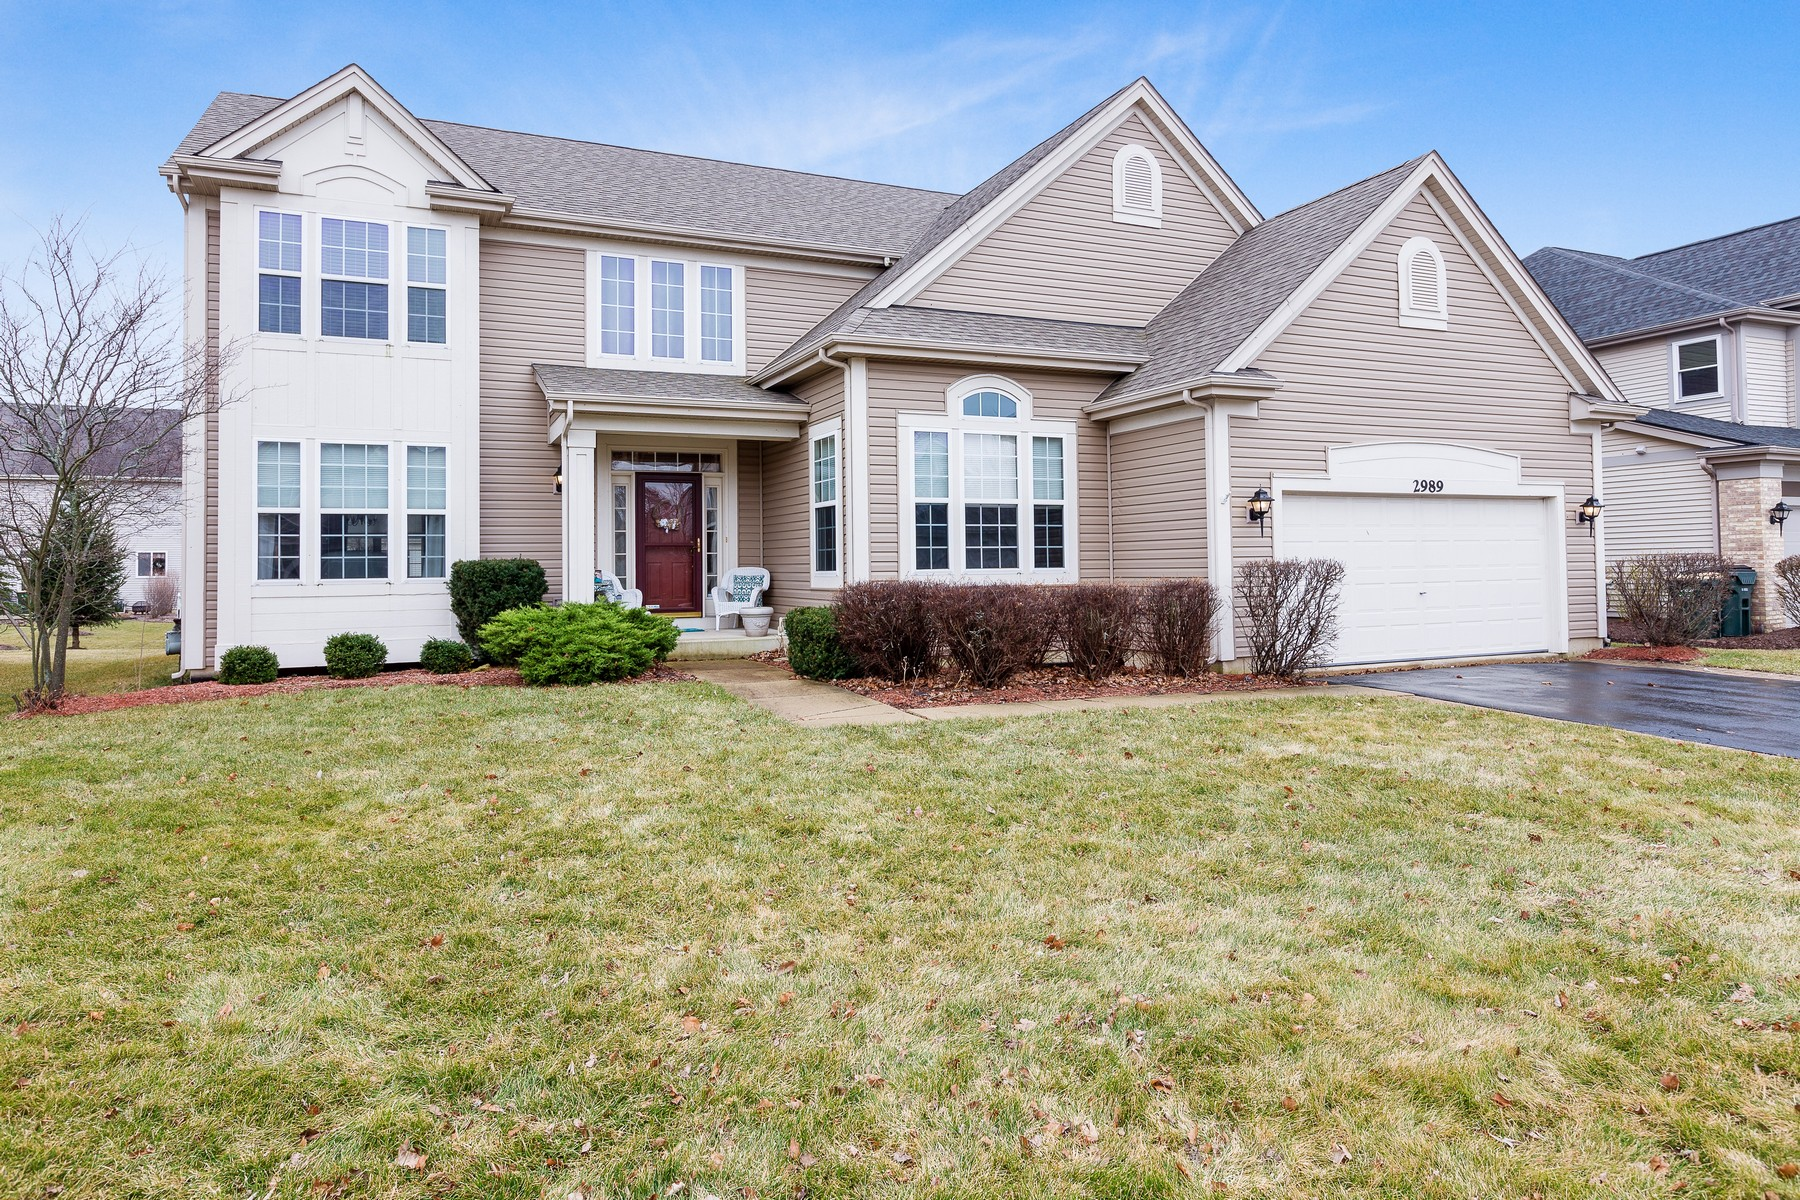 Maison unifamiliale pour l Vente à Perfect Home in Cornerstone Lakes Subdivision 2989 Blanchard Lane West Chicago, Illinois, 60185 États-Unis